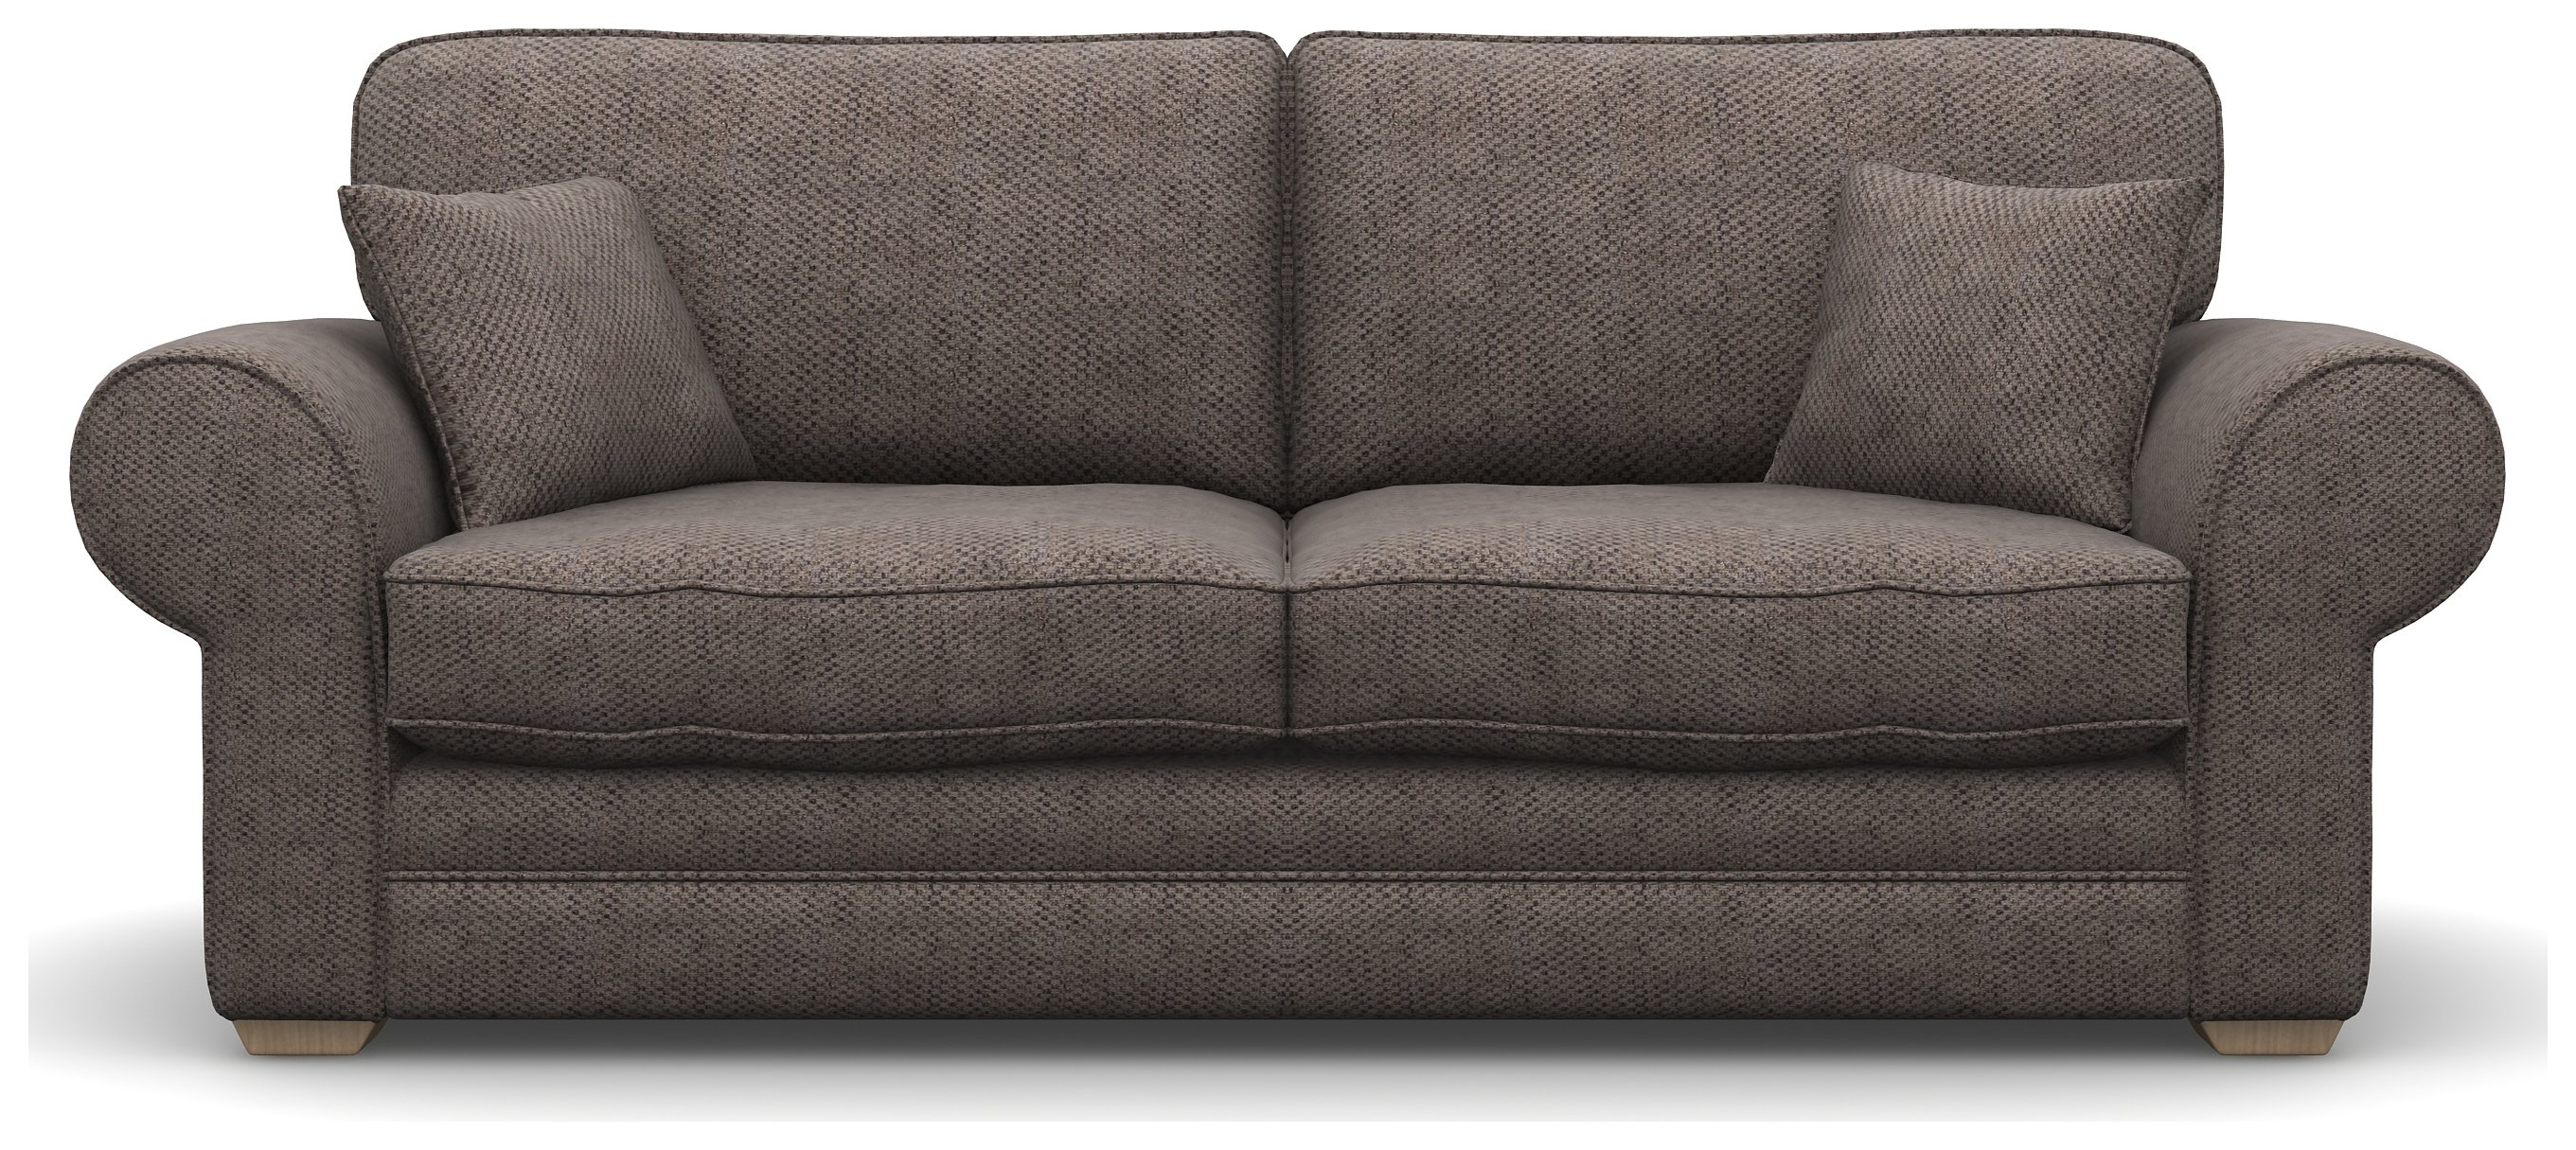 Heart of House Chedworth 3 Seater Fabric Sofa - Natural